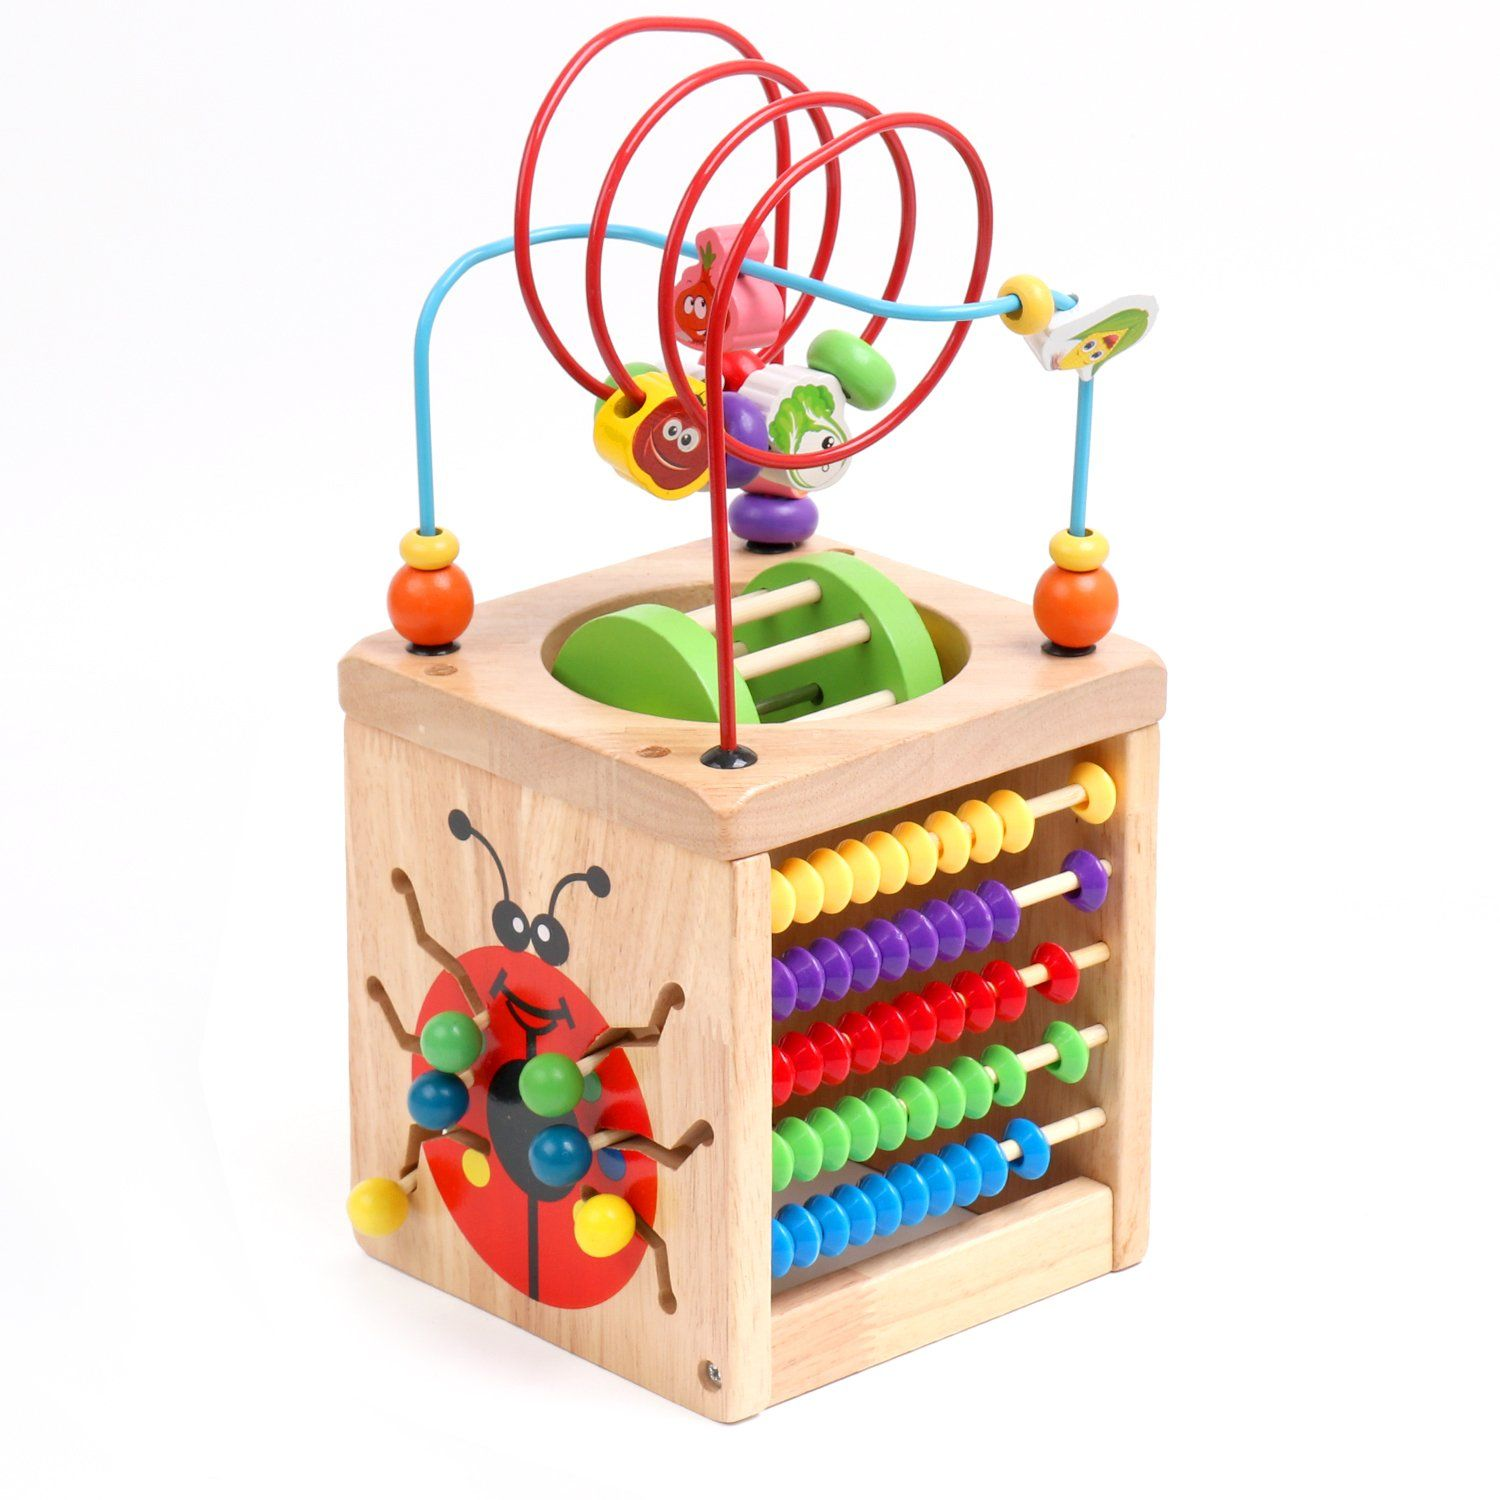 Awesome Multifunction Bead Maze, Amagoing 6 In 1 Wooden Cube Activity Center  Learning Cube Amazing Design